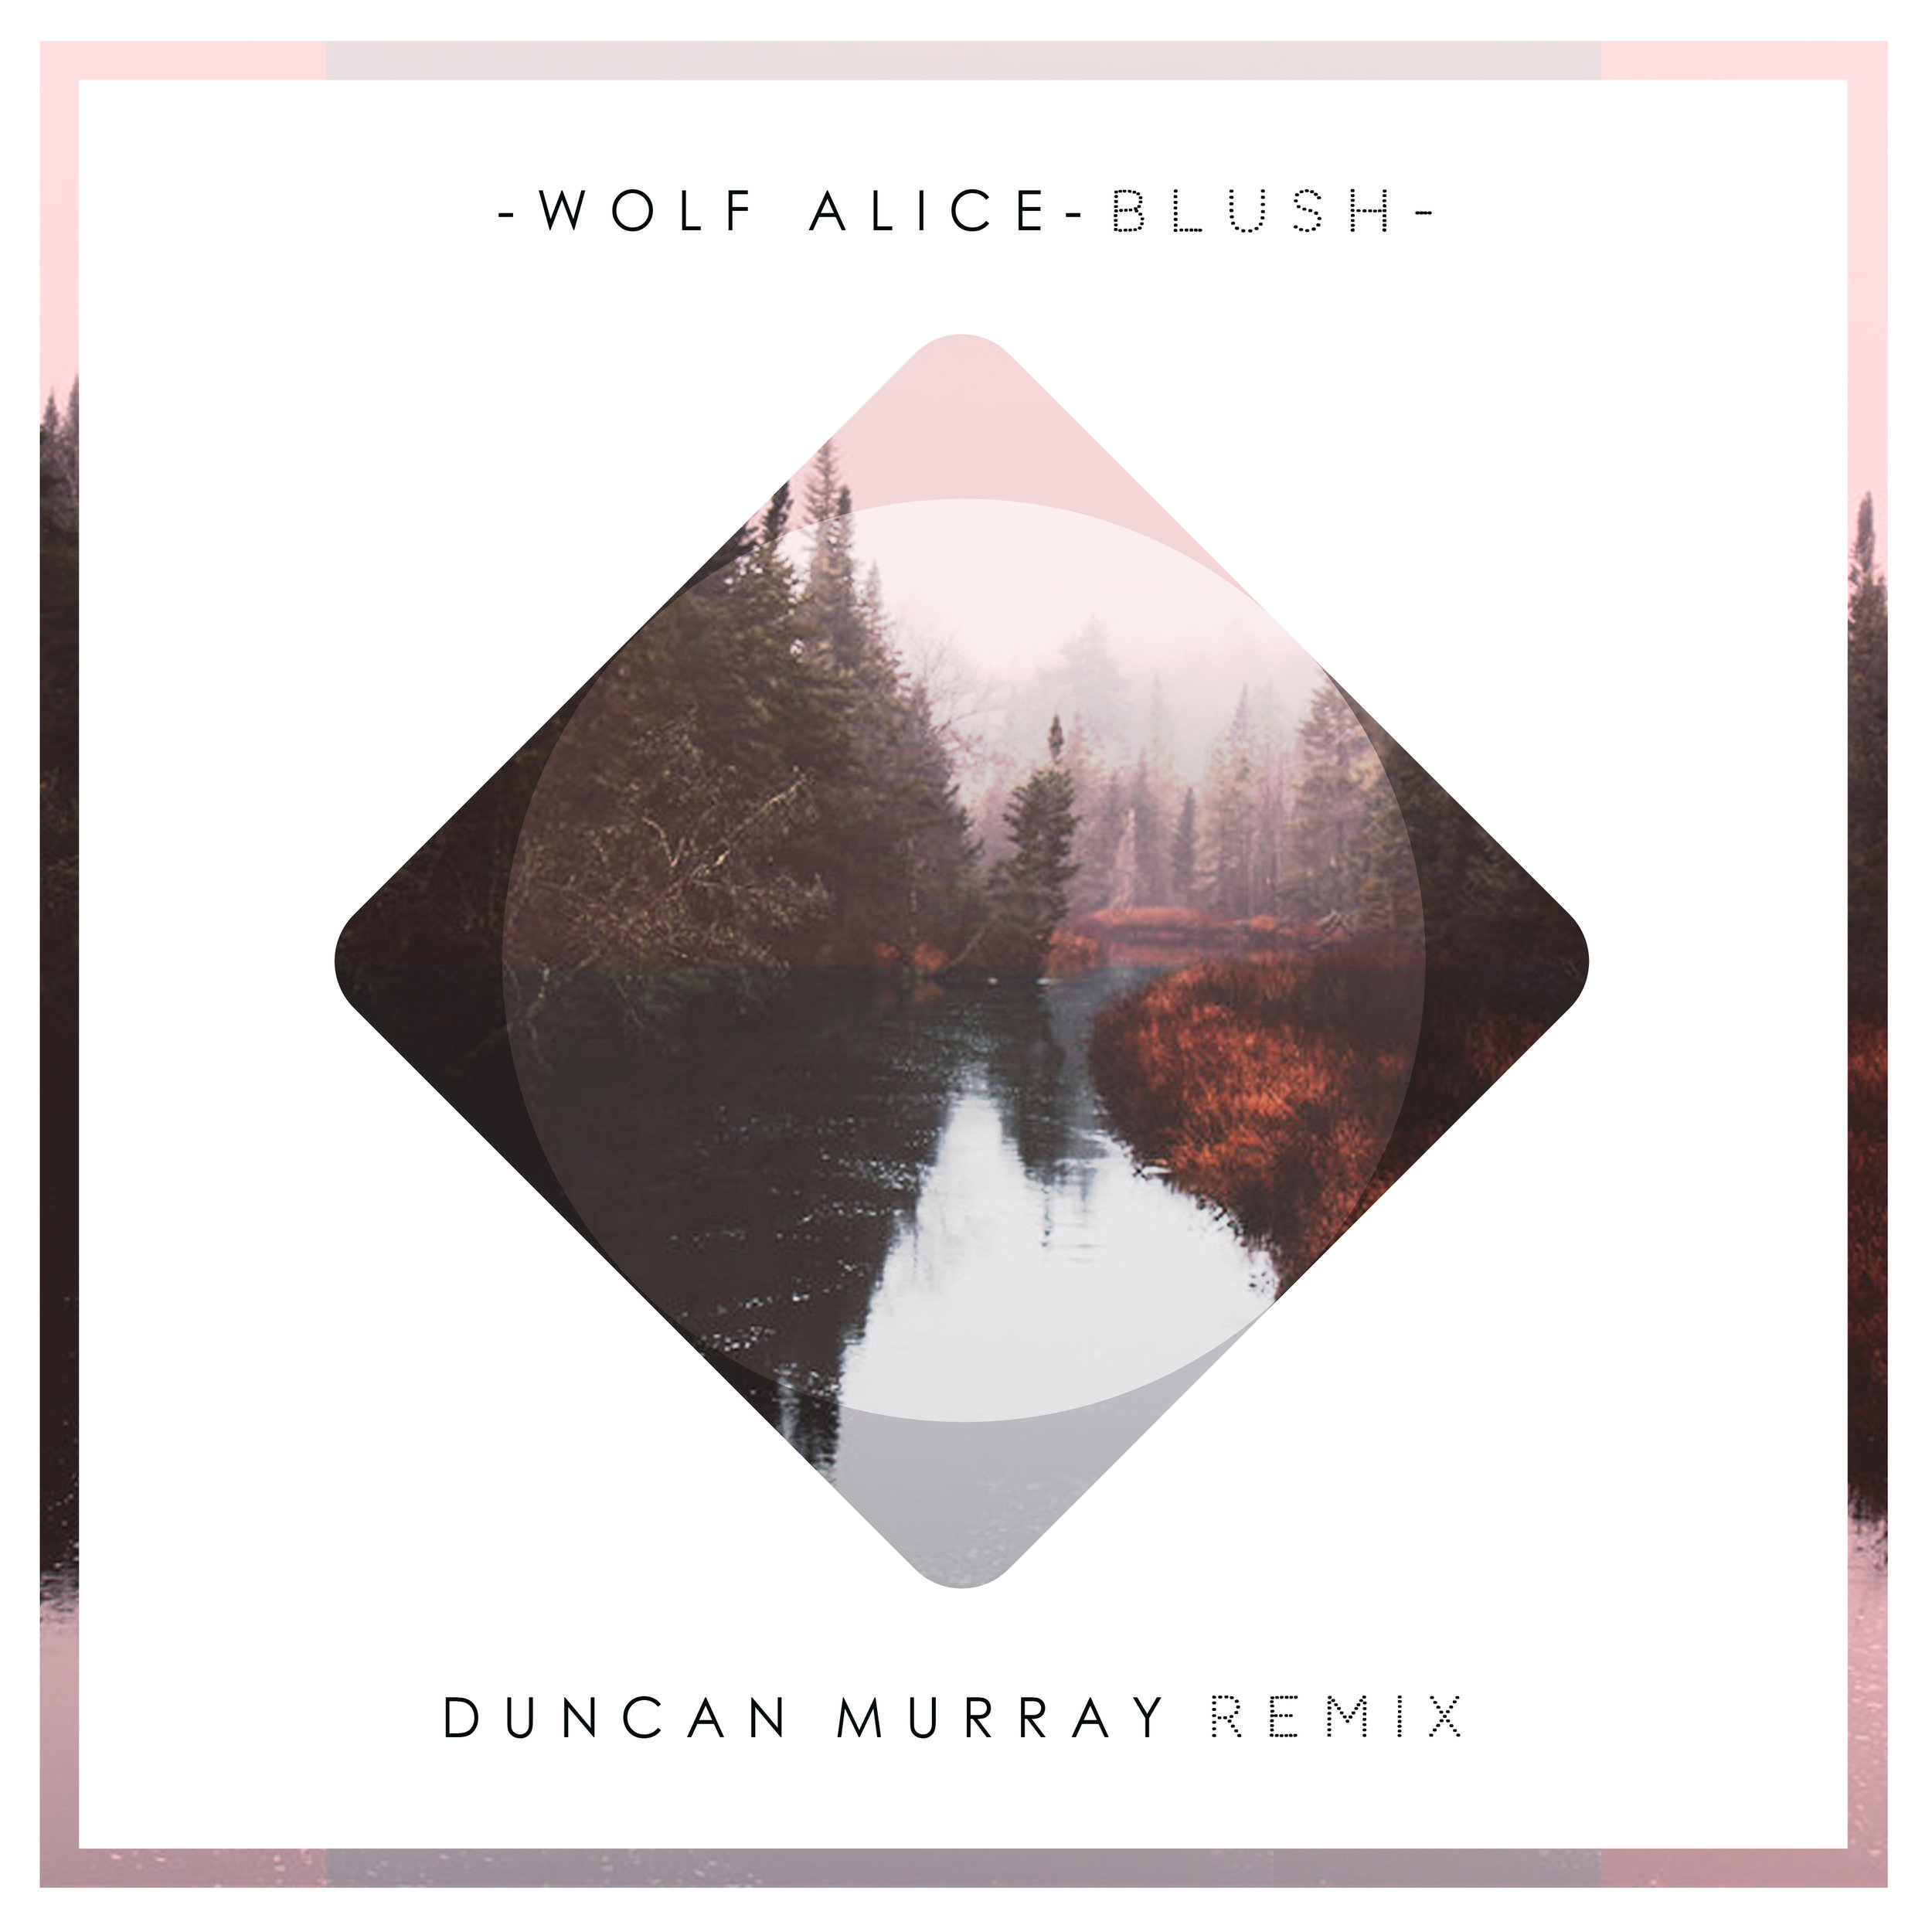 Wolf Alice - Blush (Duncan Murray Remix) ARTWORK